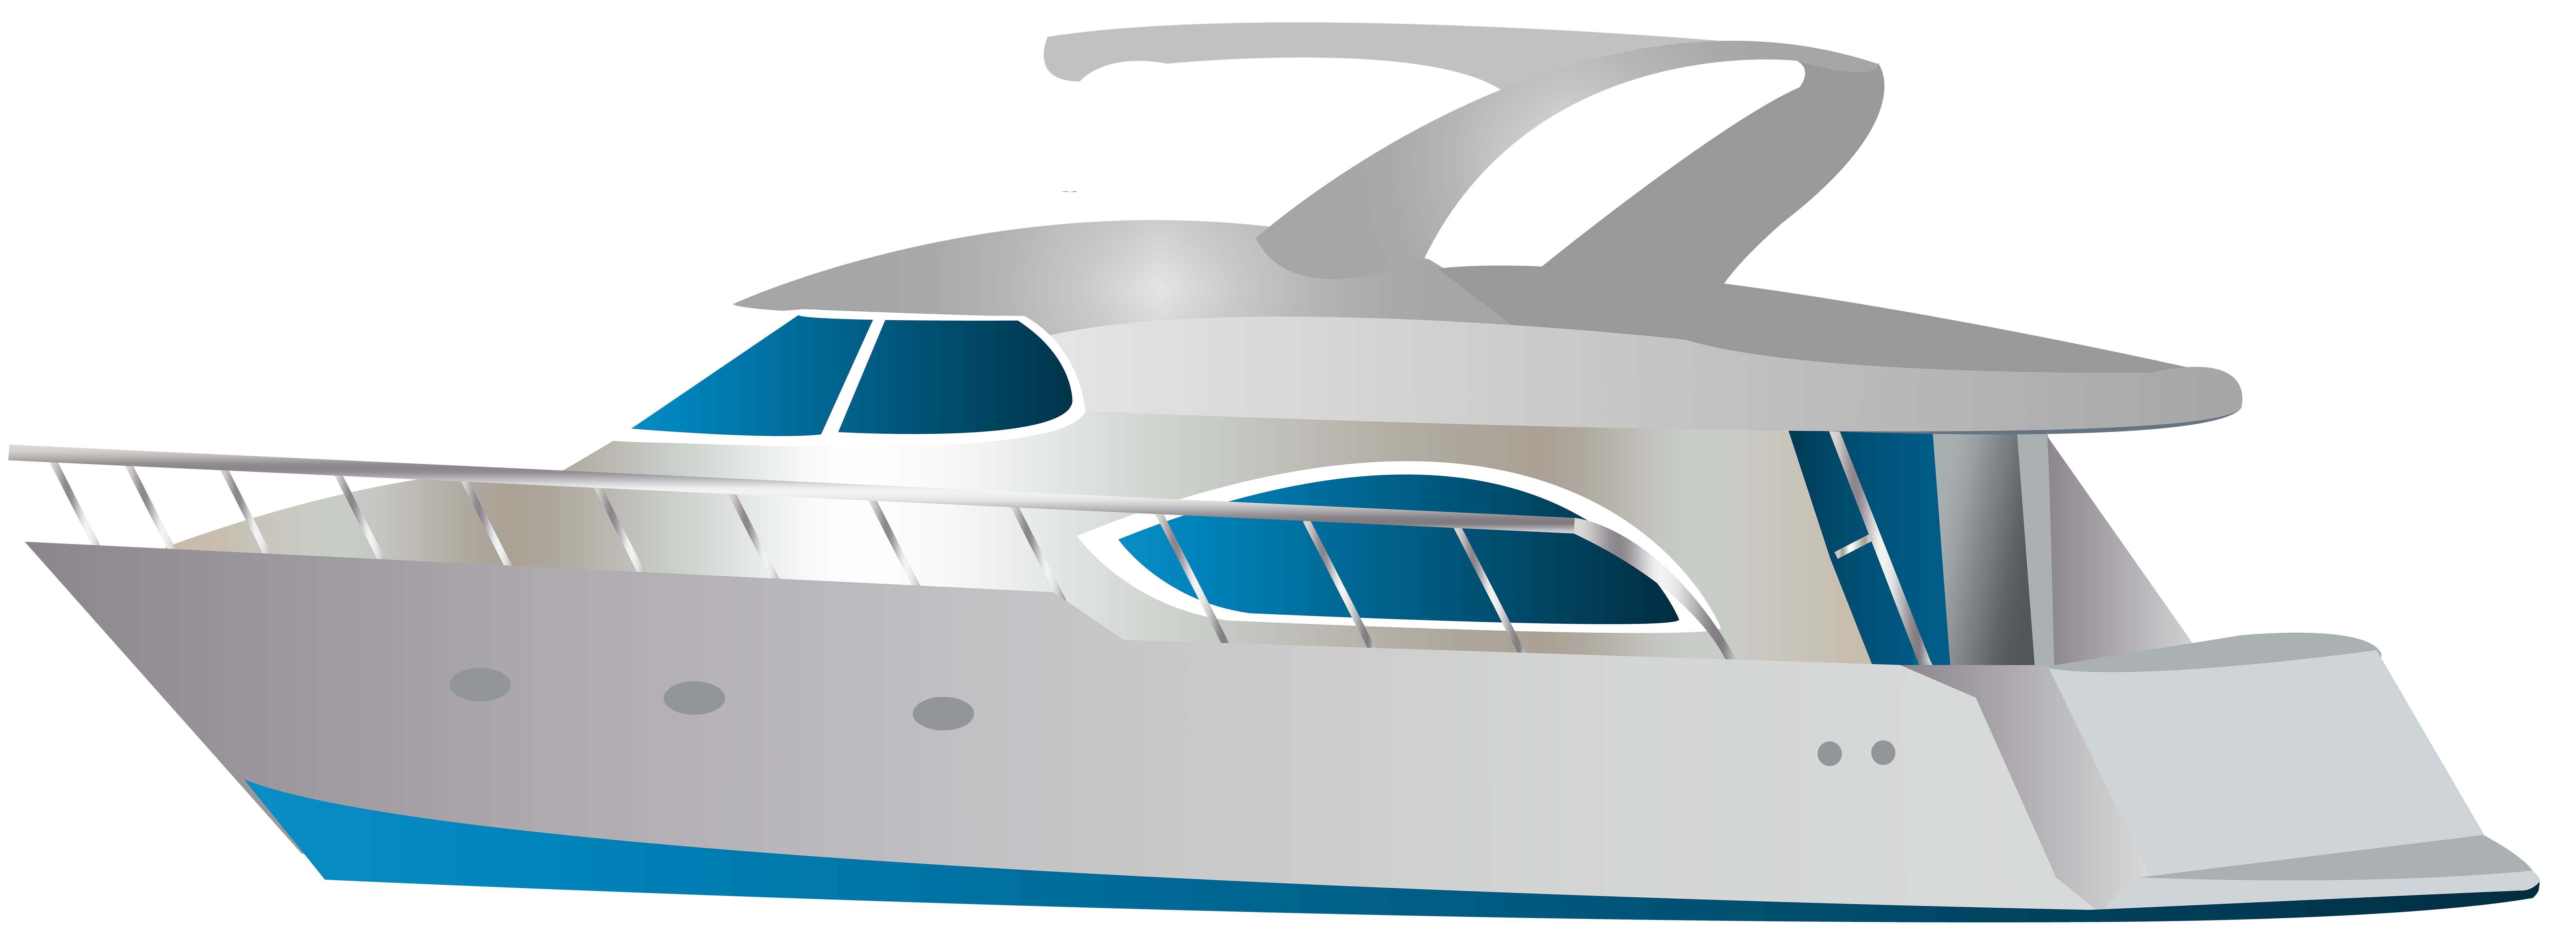 clip art black and white Speed boat transparent png. Boats clipart water transport